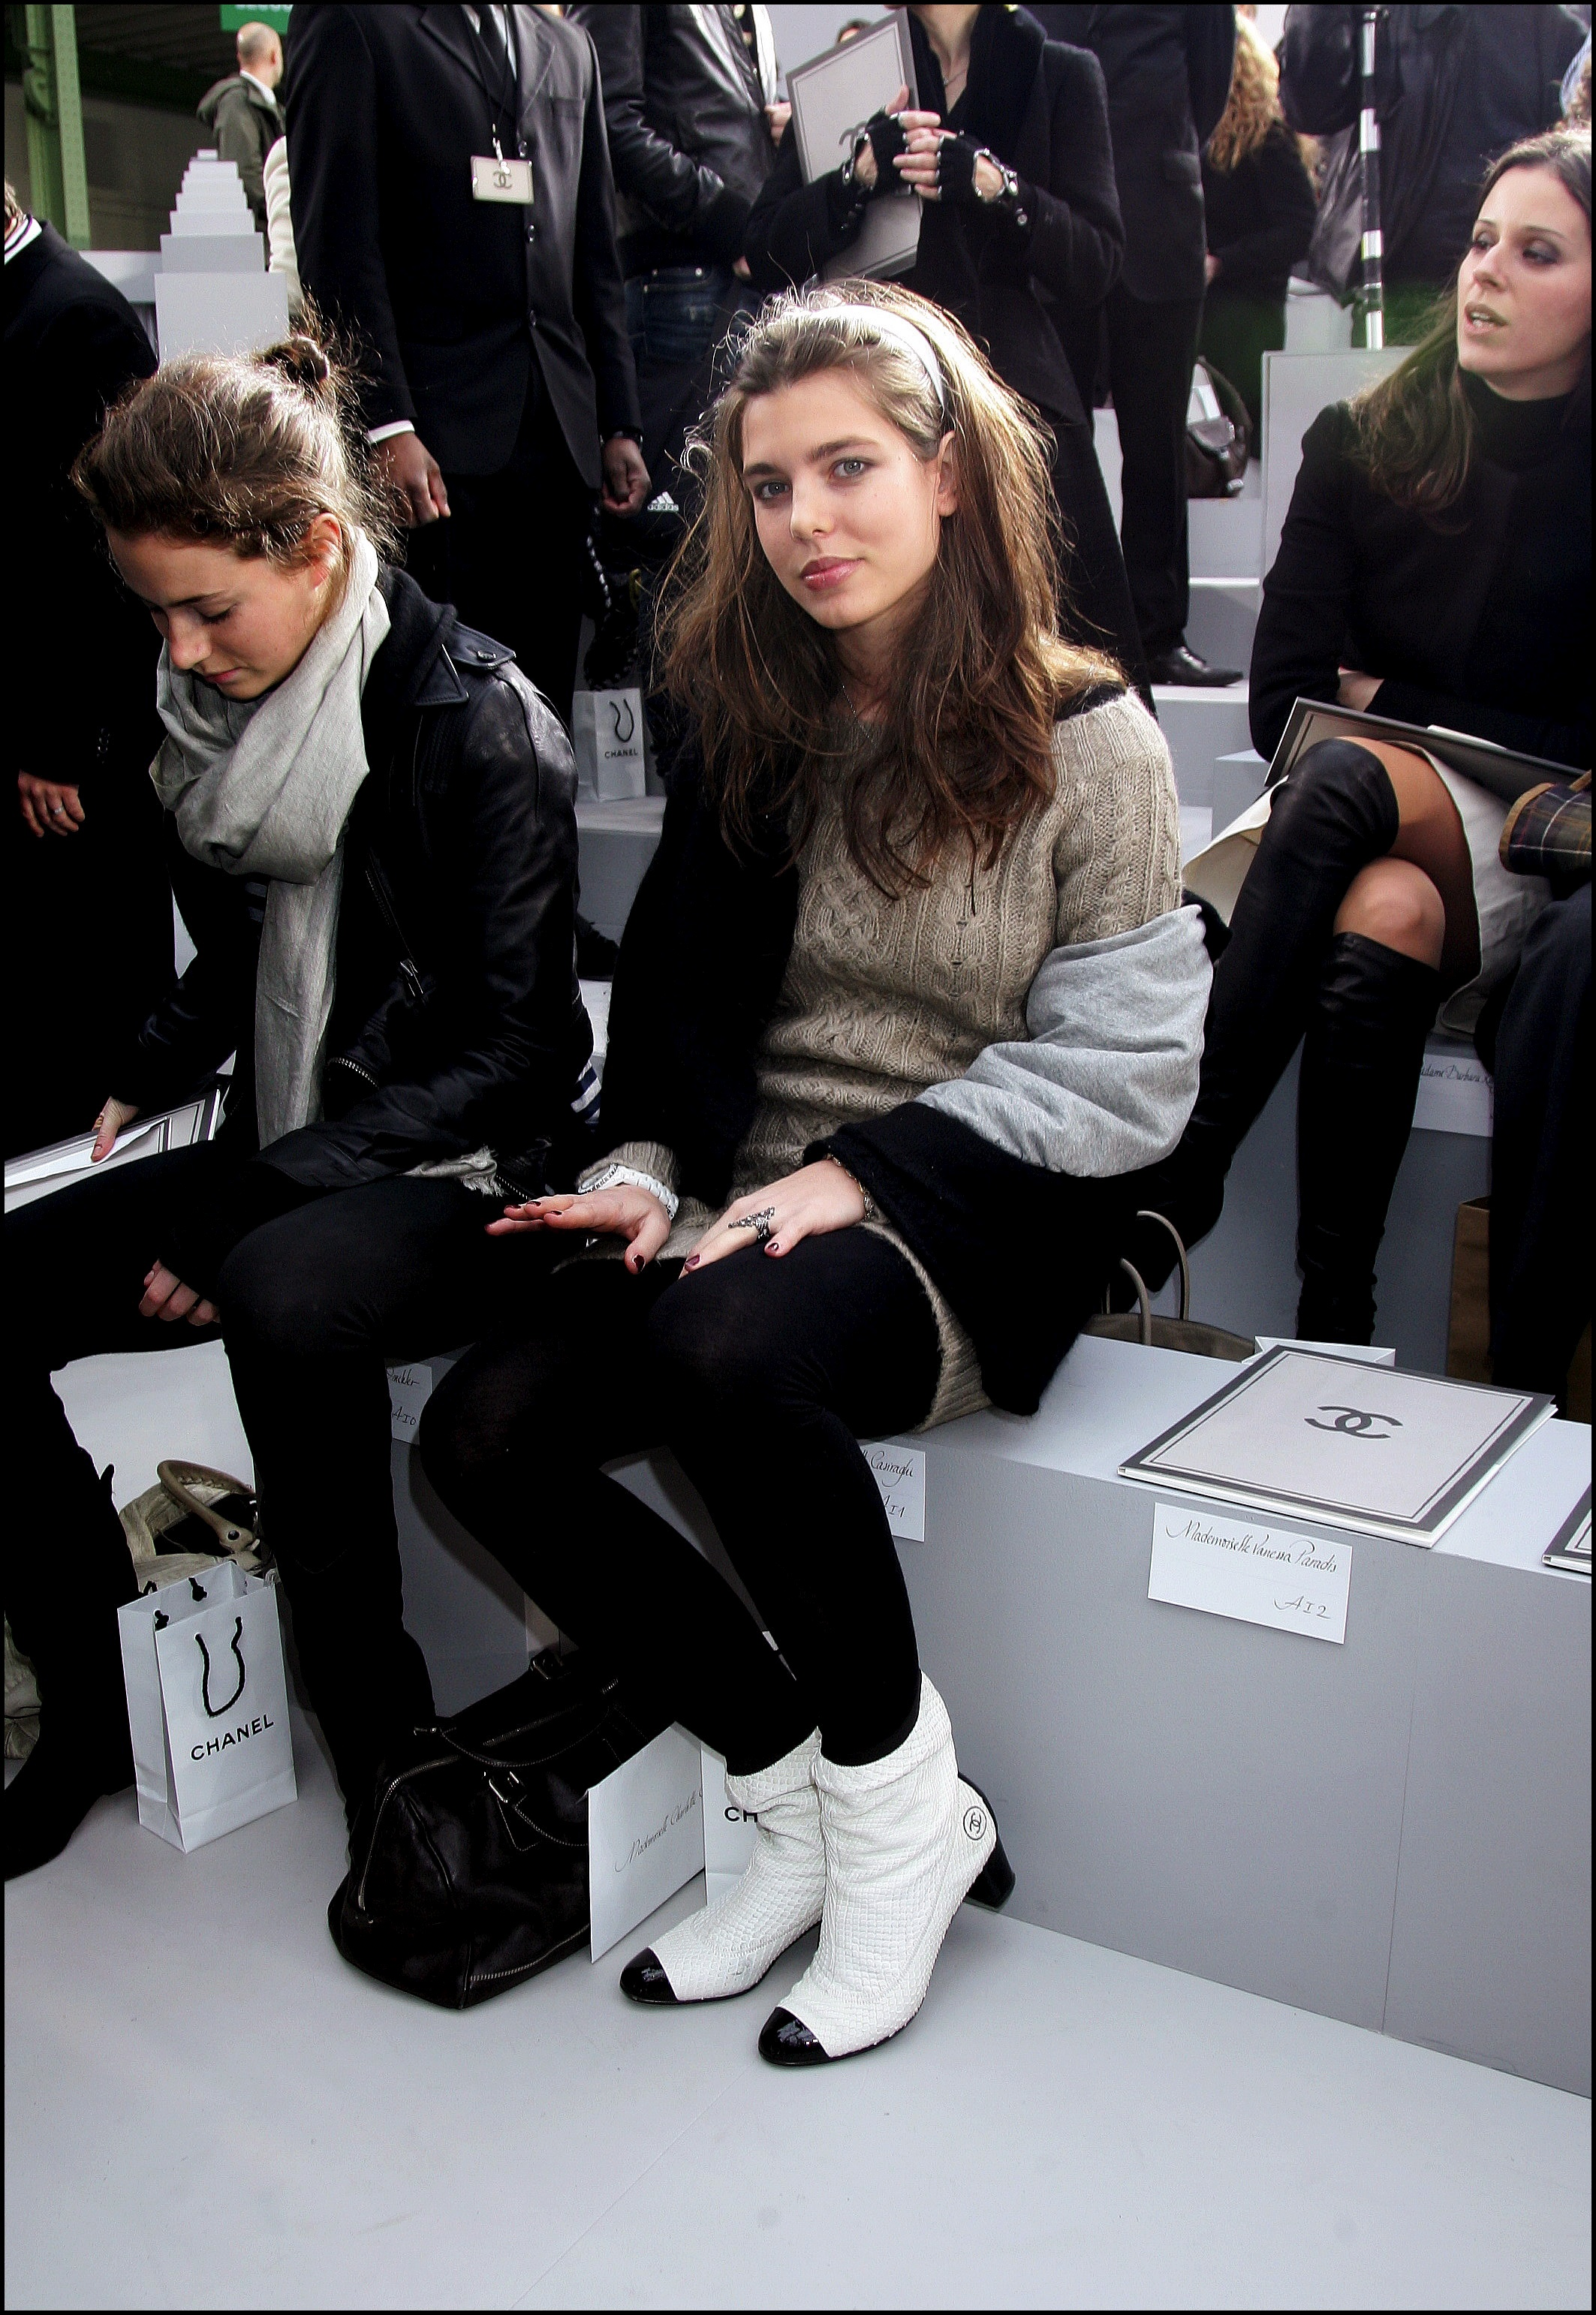 People at Chanel Spring-Summer 2007 Haute Couture Fashion show in Paris, France on January 23, 2007.